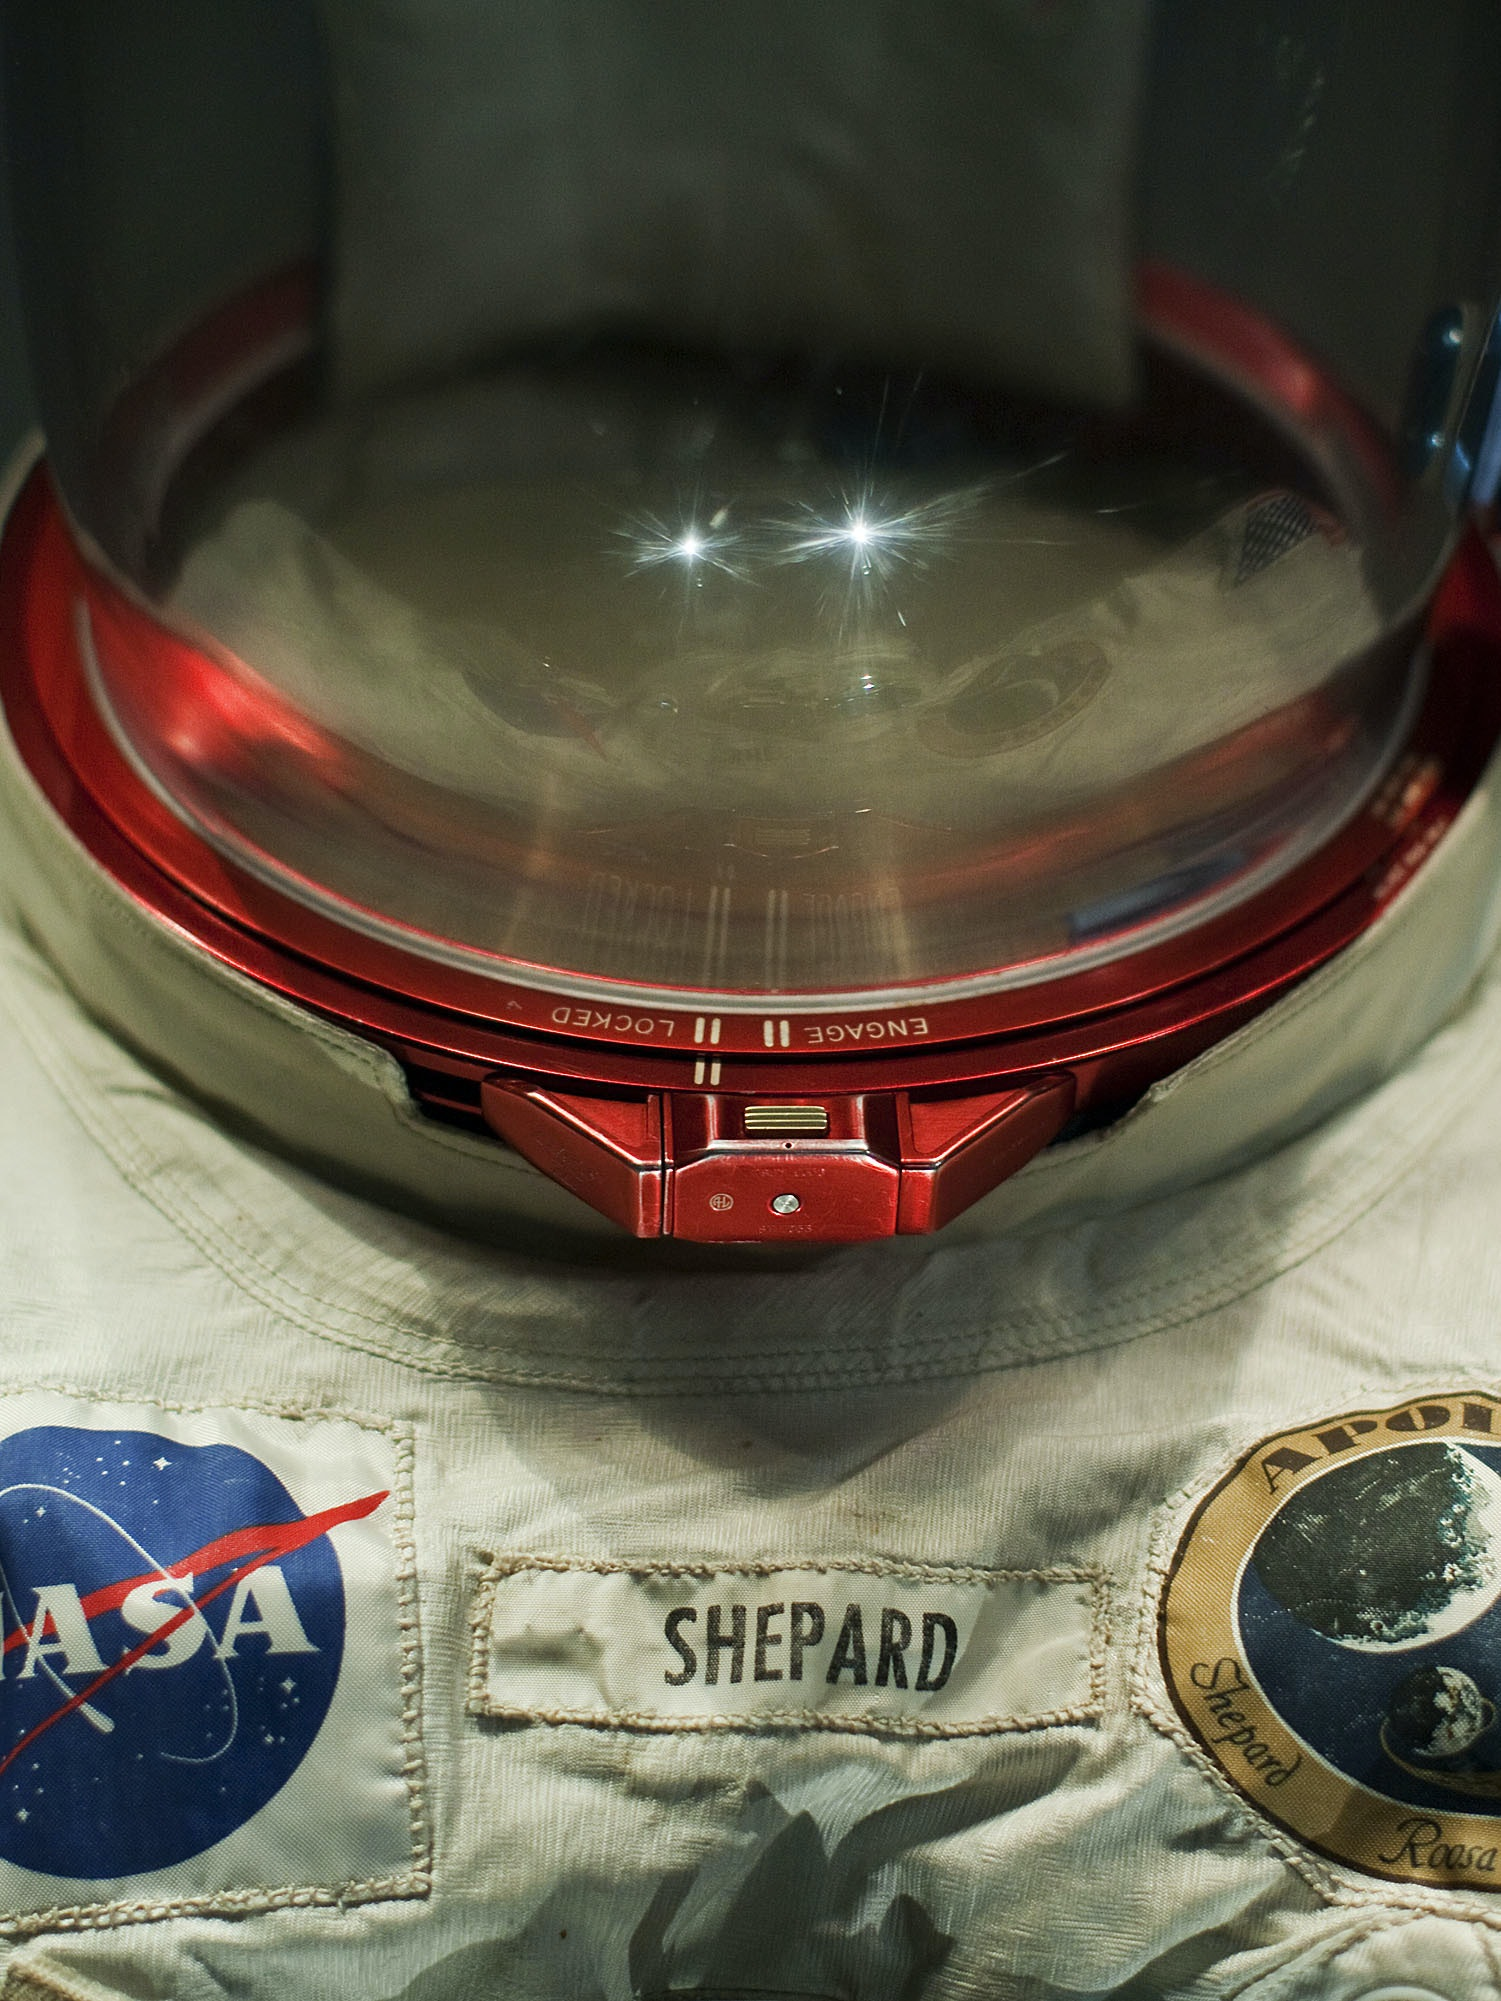 Alan Shepard's extra-vehicular suit is on display at the Apollo Treasures Gallery at the Kennedy Space Center Visitor Complex July 16, 2009 in Cape Canaveral, Florida. The gallery opening celebrates the 40th anniversary of the Apollo moon landing.